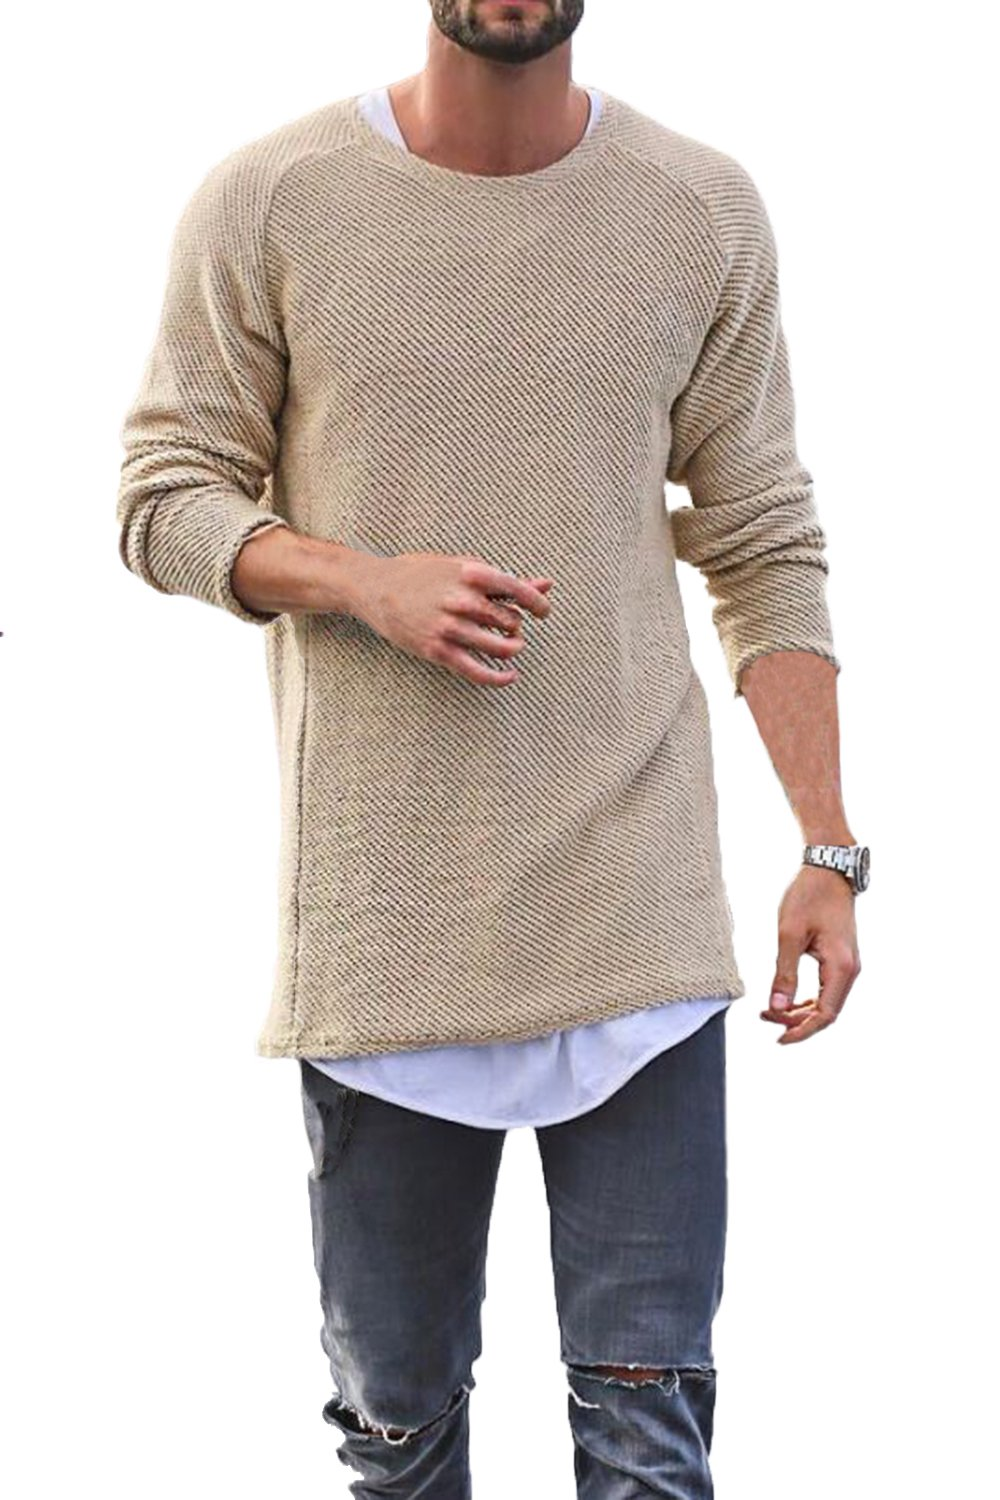 Men's Fashion Leisure Round Neck Baggy Long Sleeve Hip-Hop Solid Color Knit Sweaters